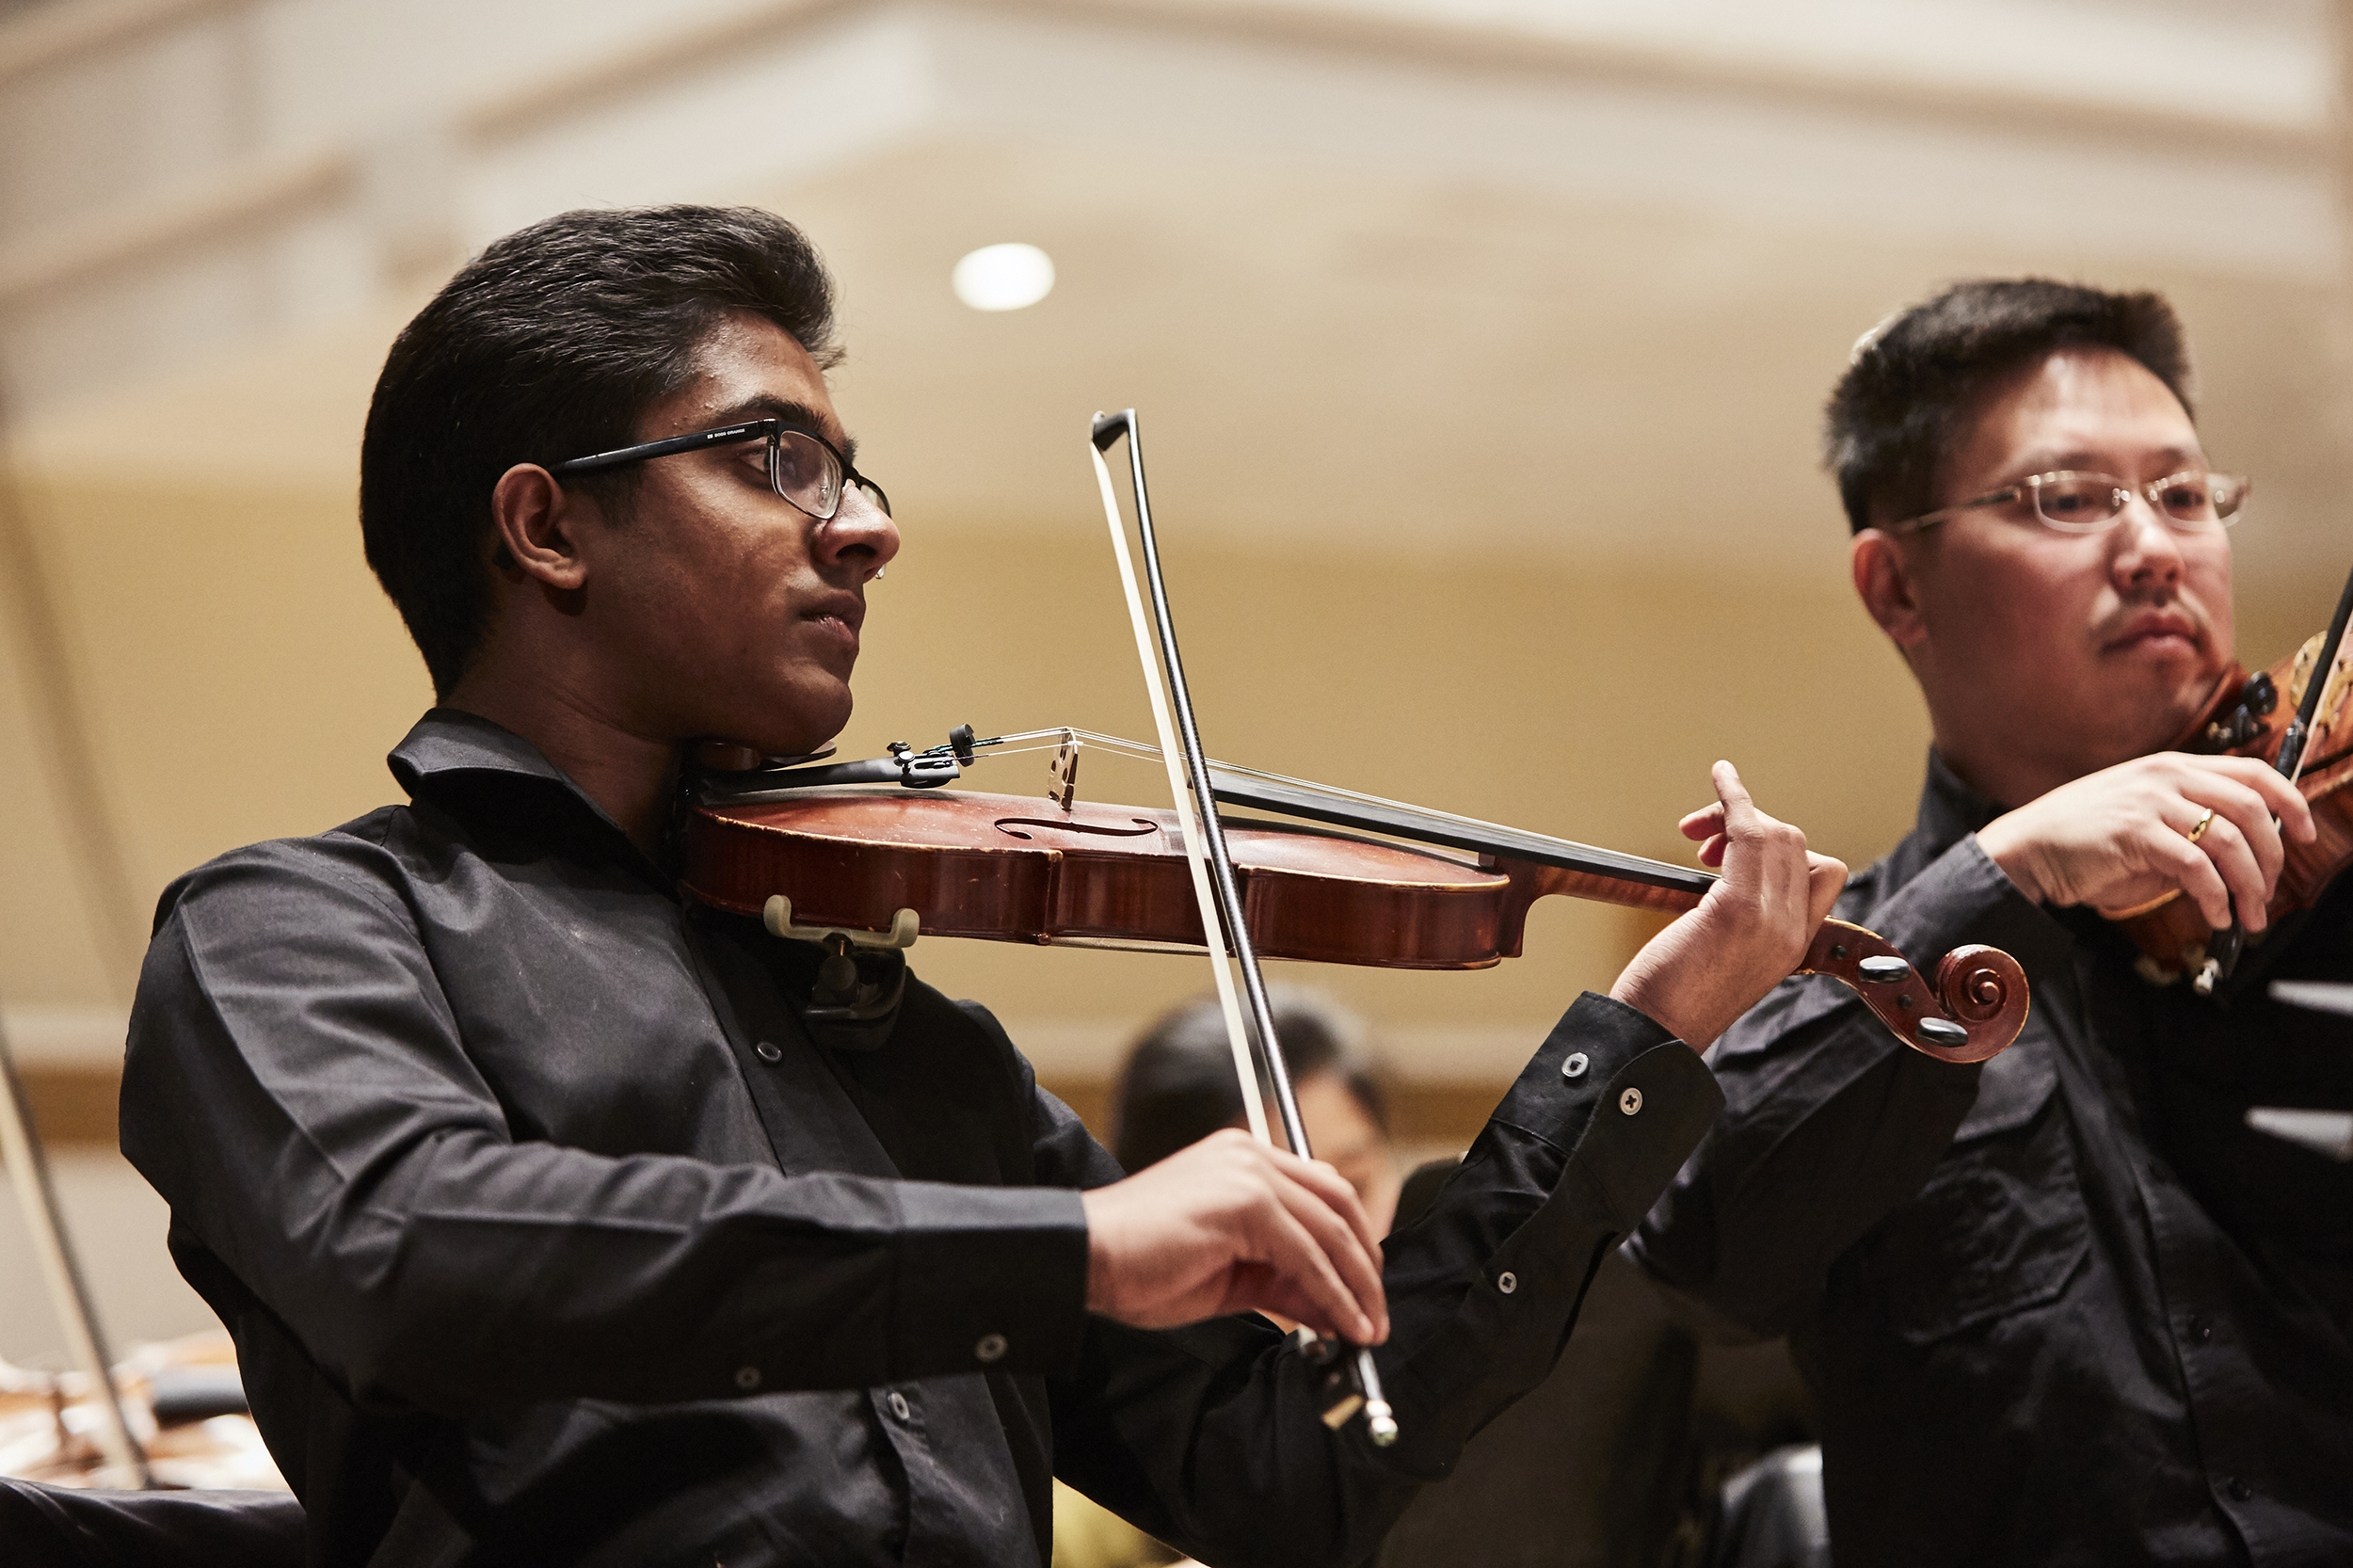 Young players performing alongside the Philharmonia